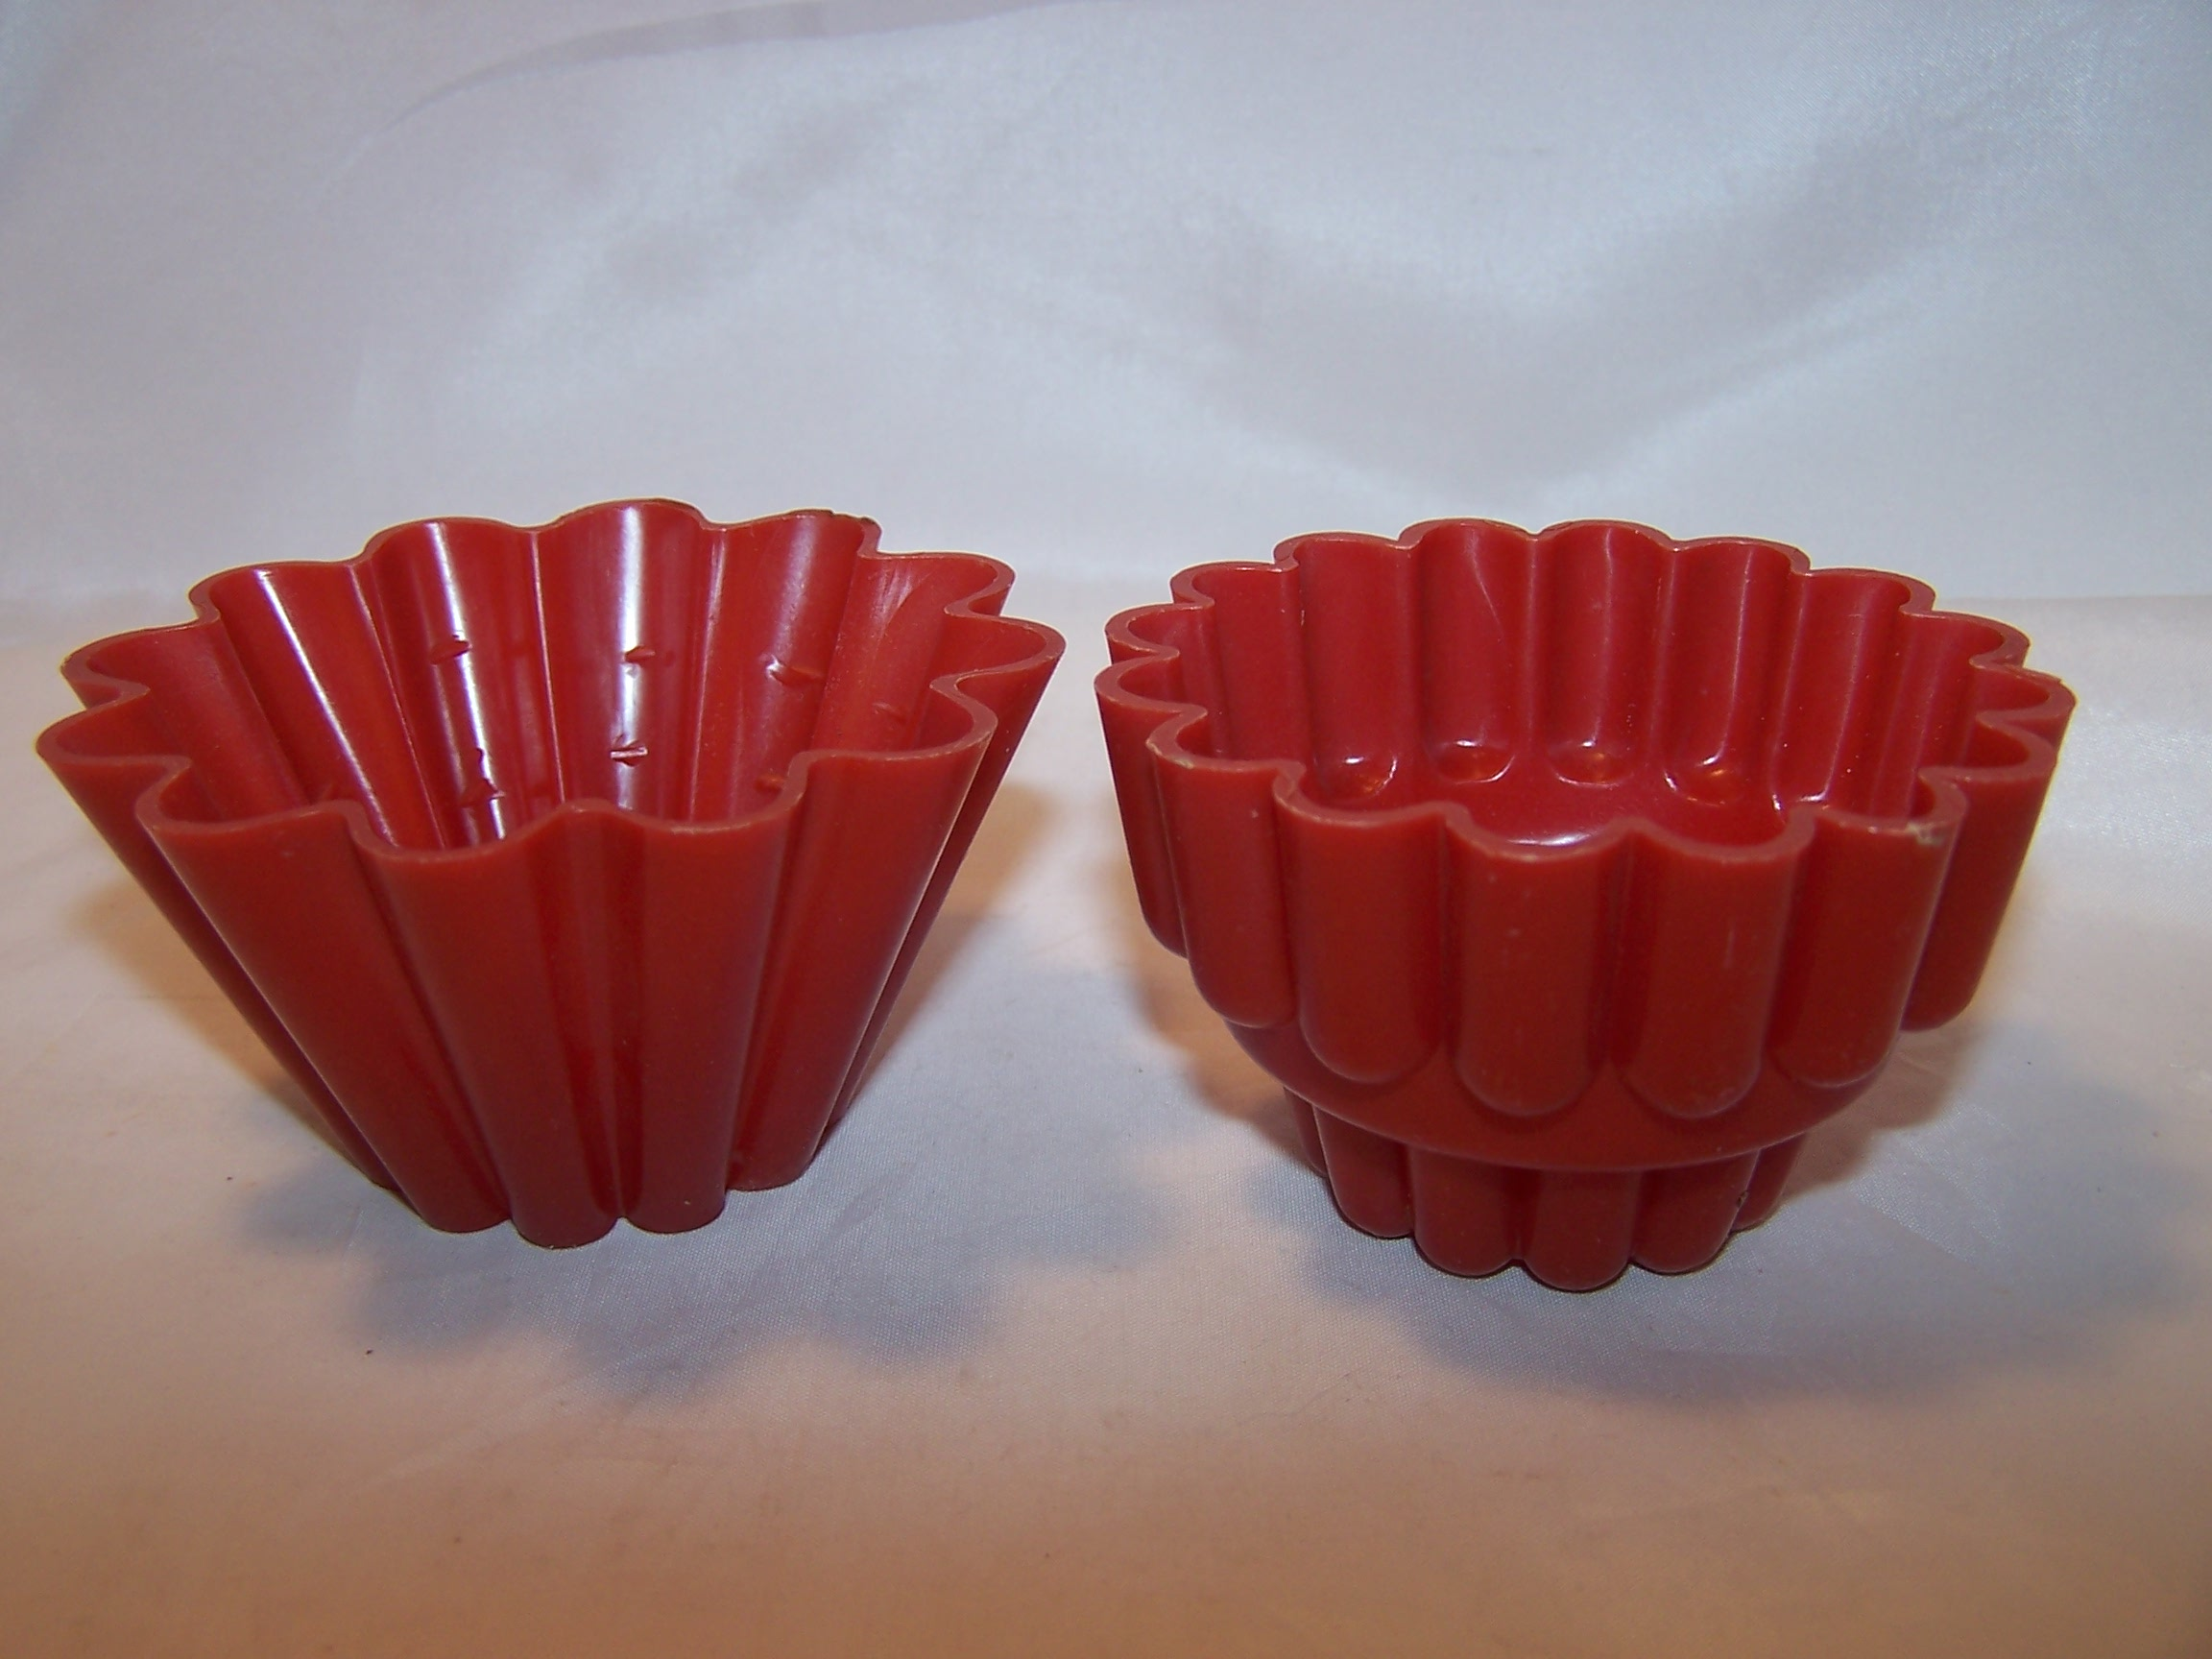 Image 2 of Toy Jello Molds, Childs Cookware, Plastic